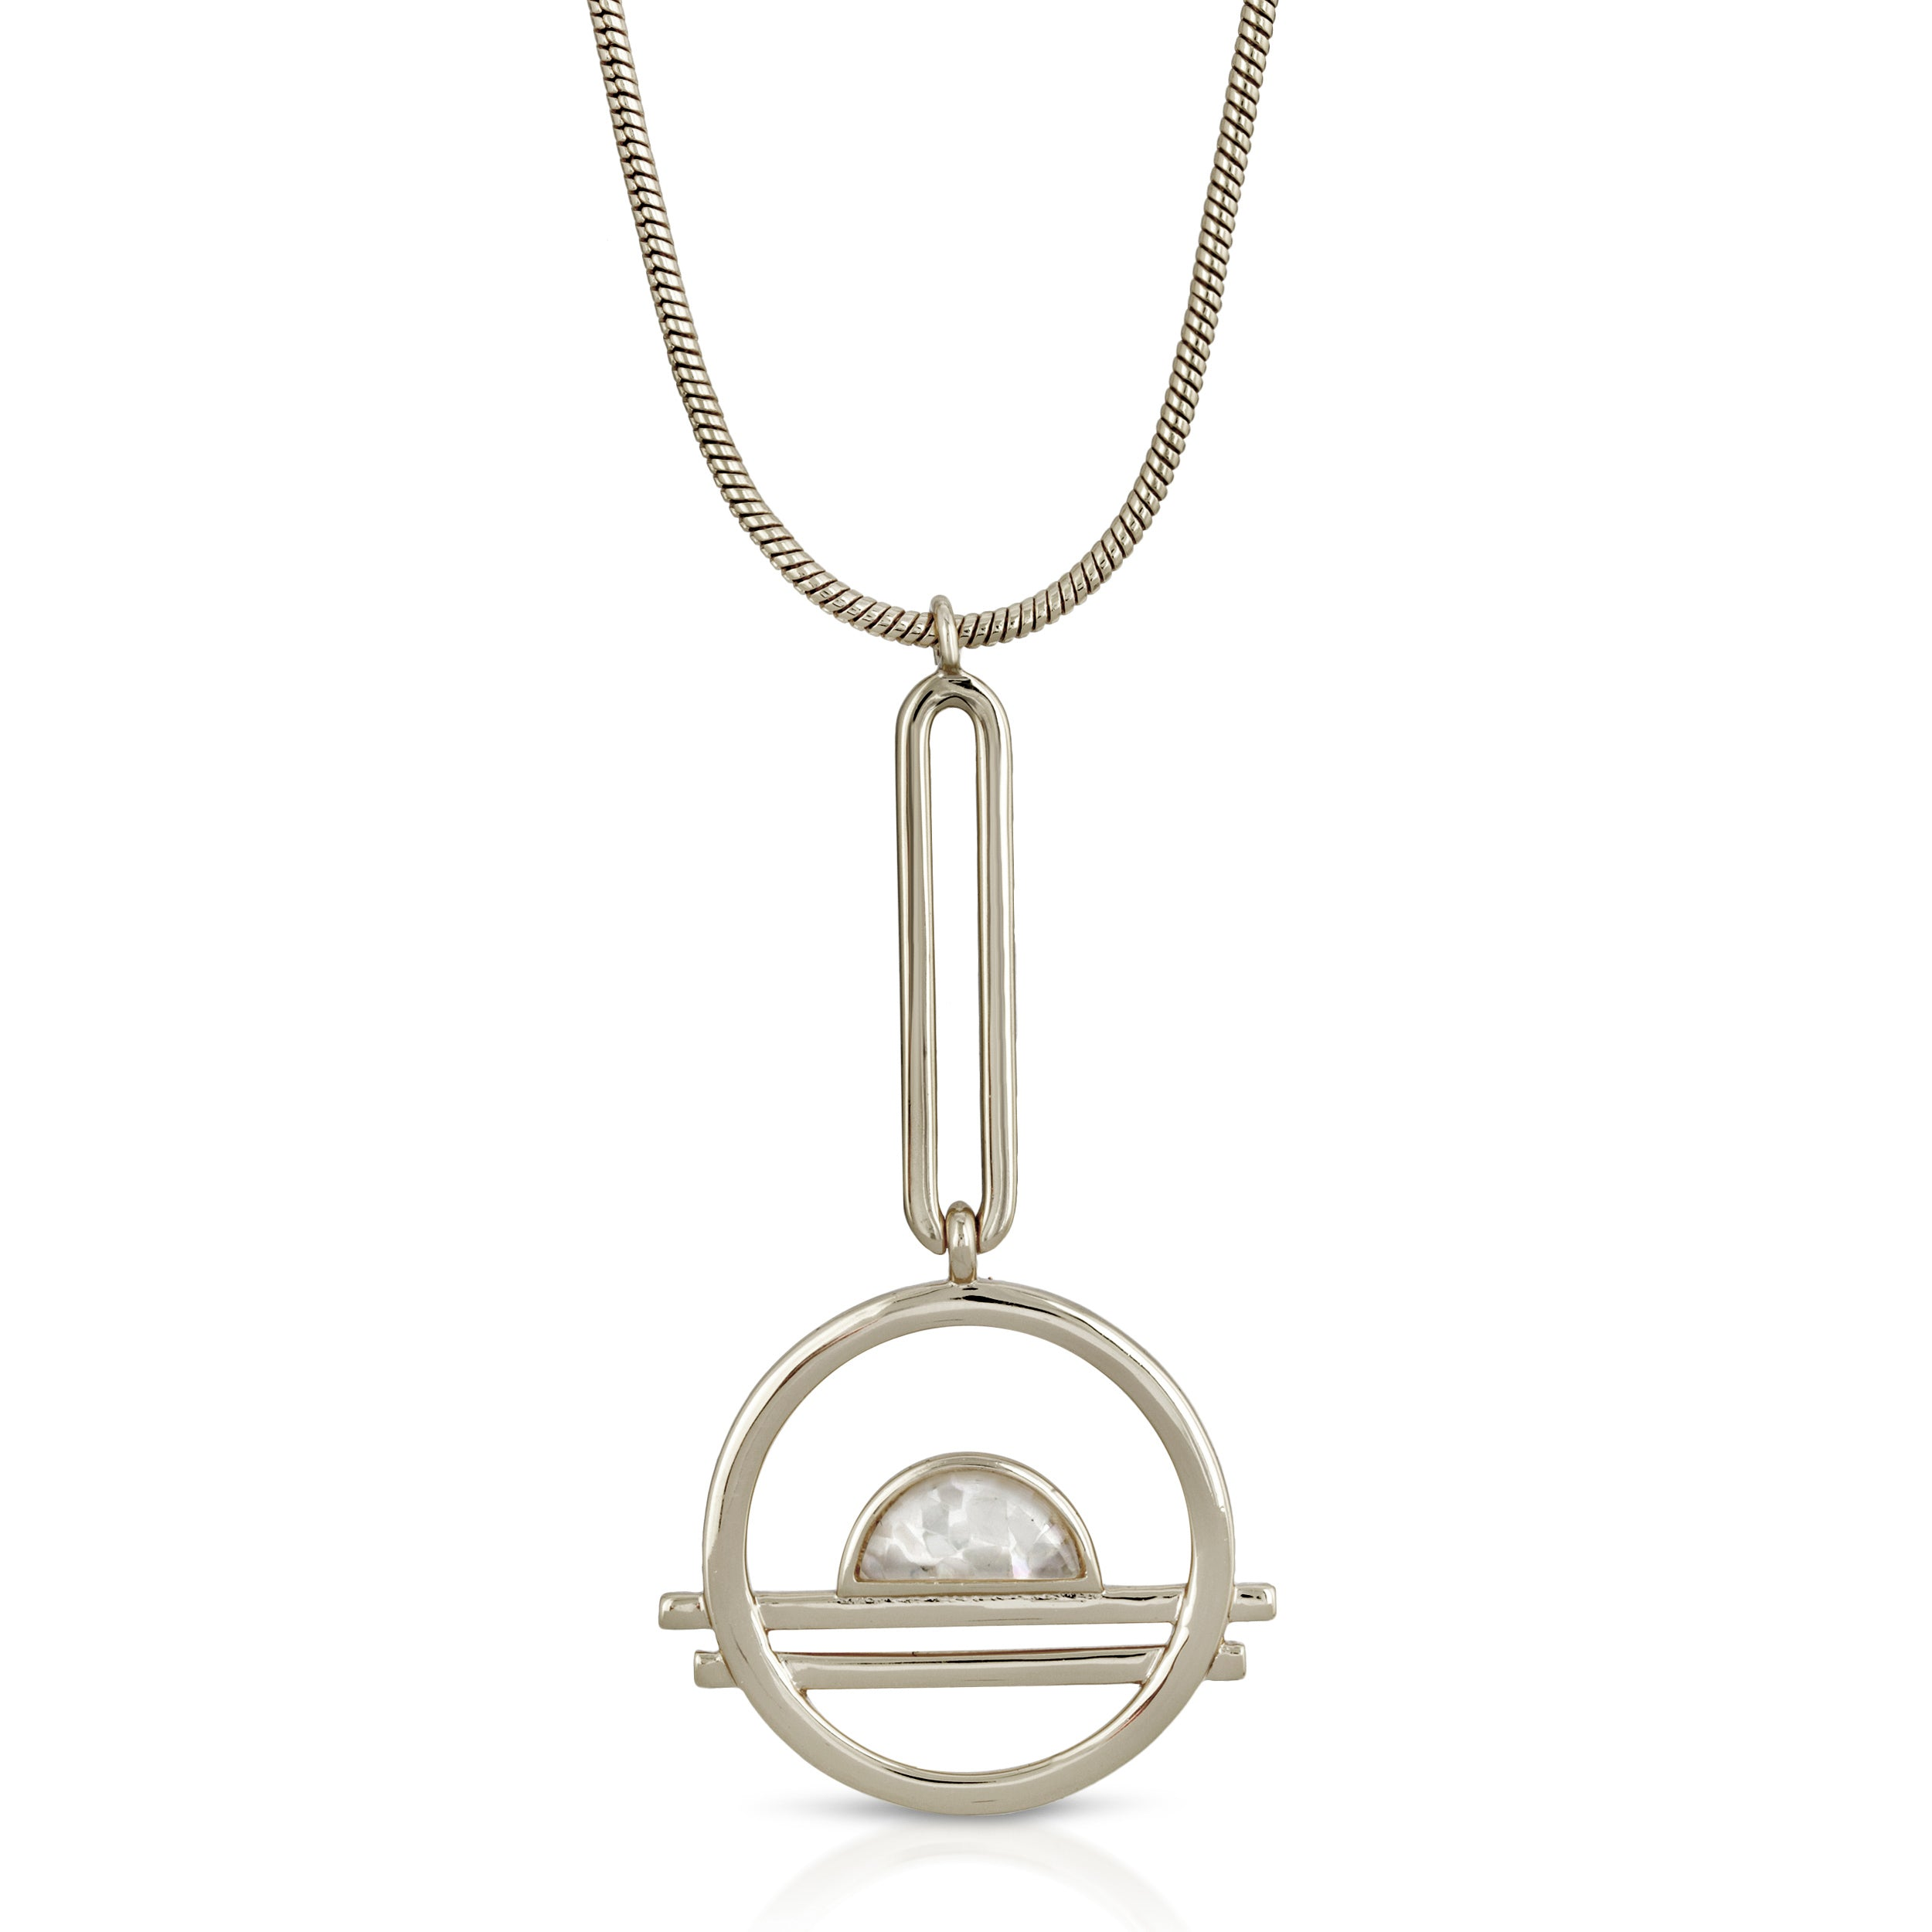 Ocean Drive Pendulum Necklace - Mother of Pearl